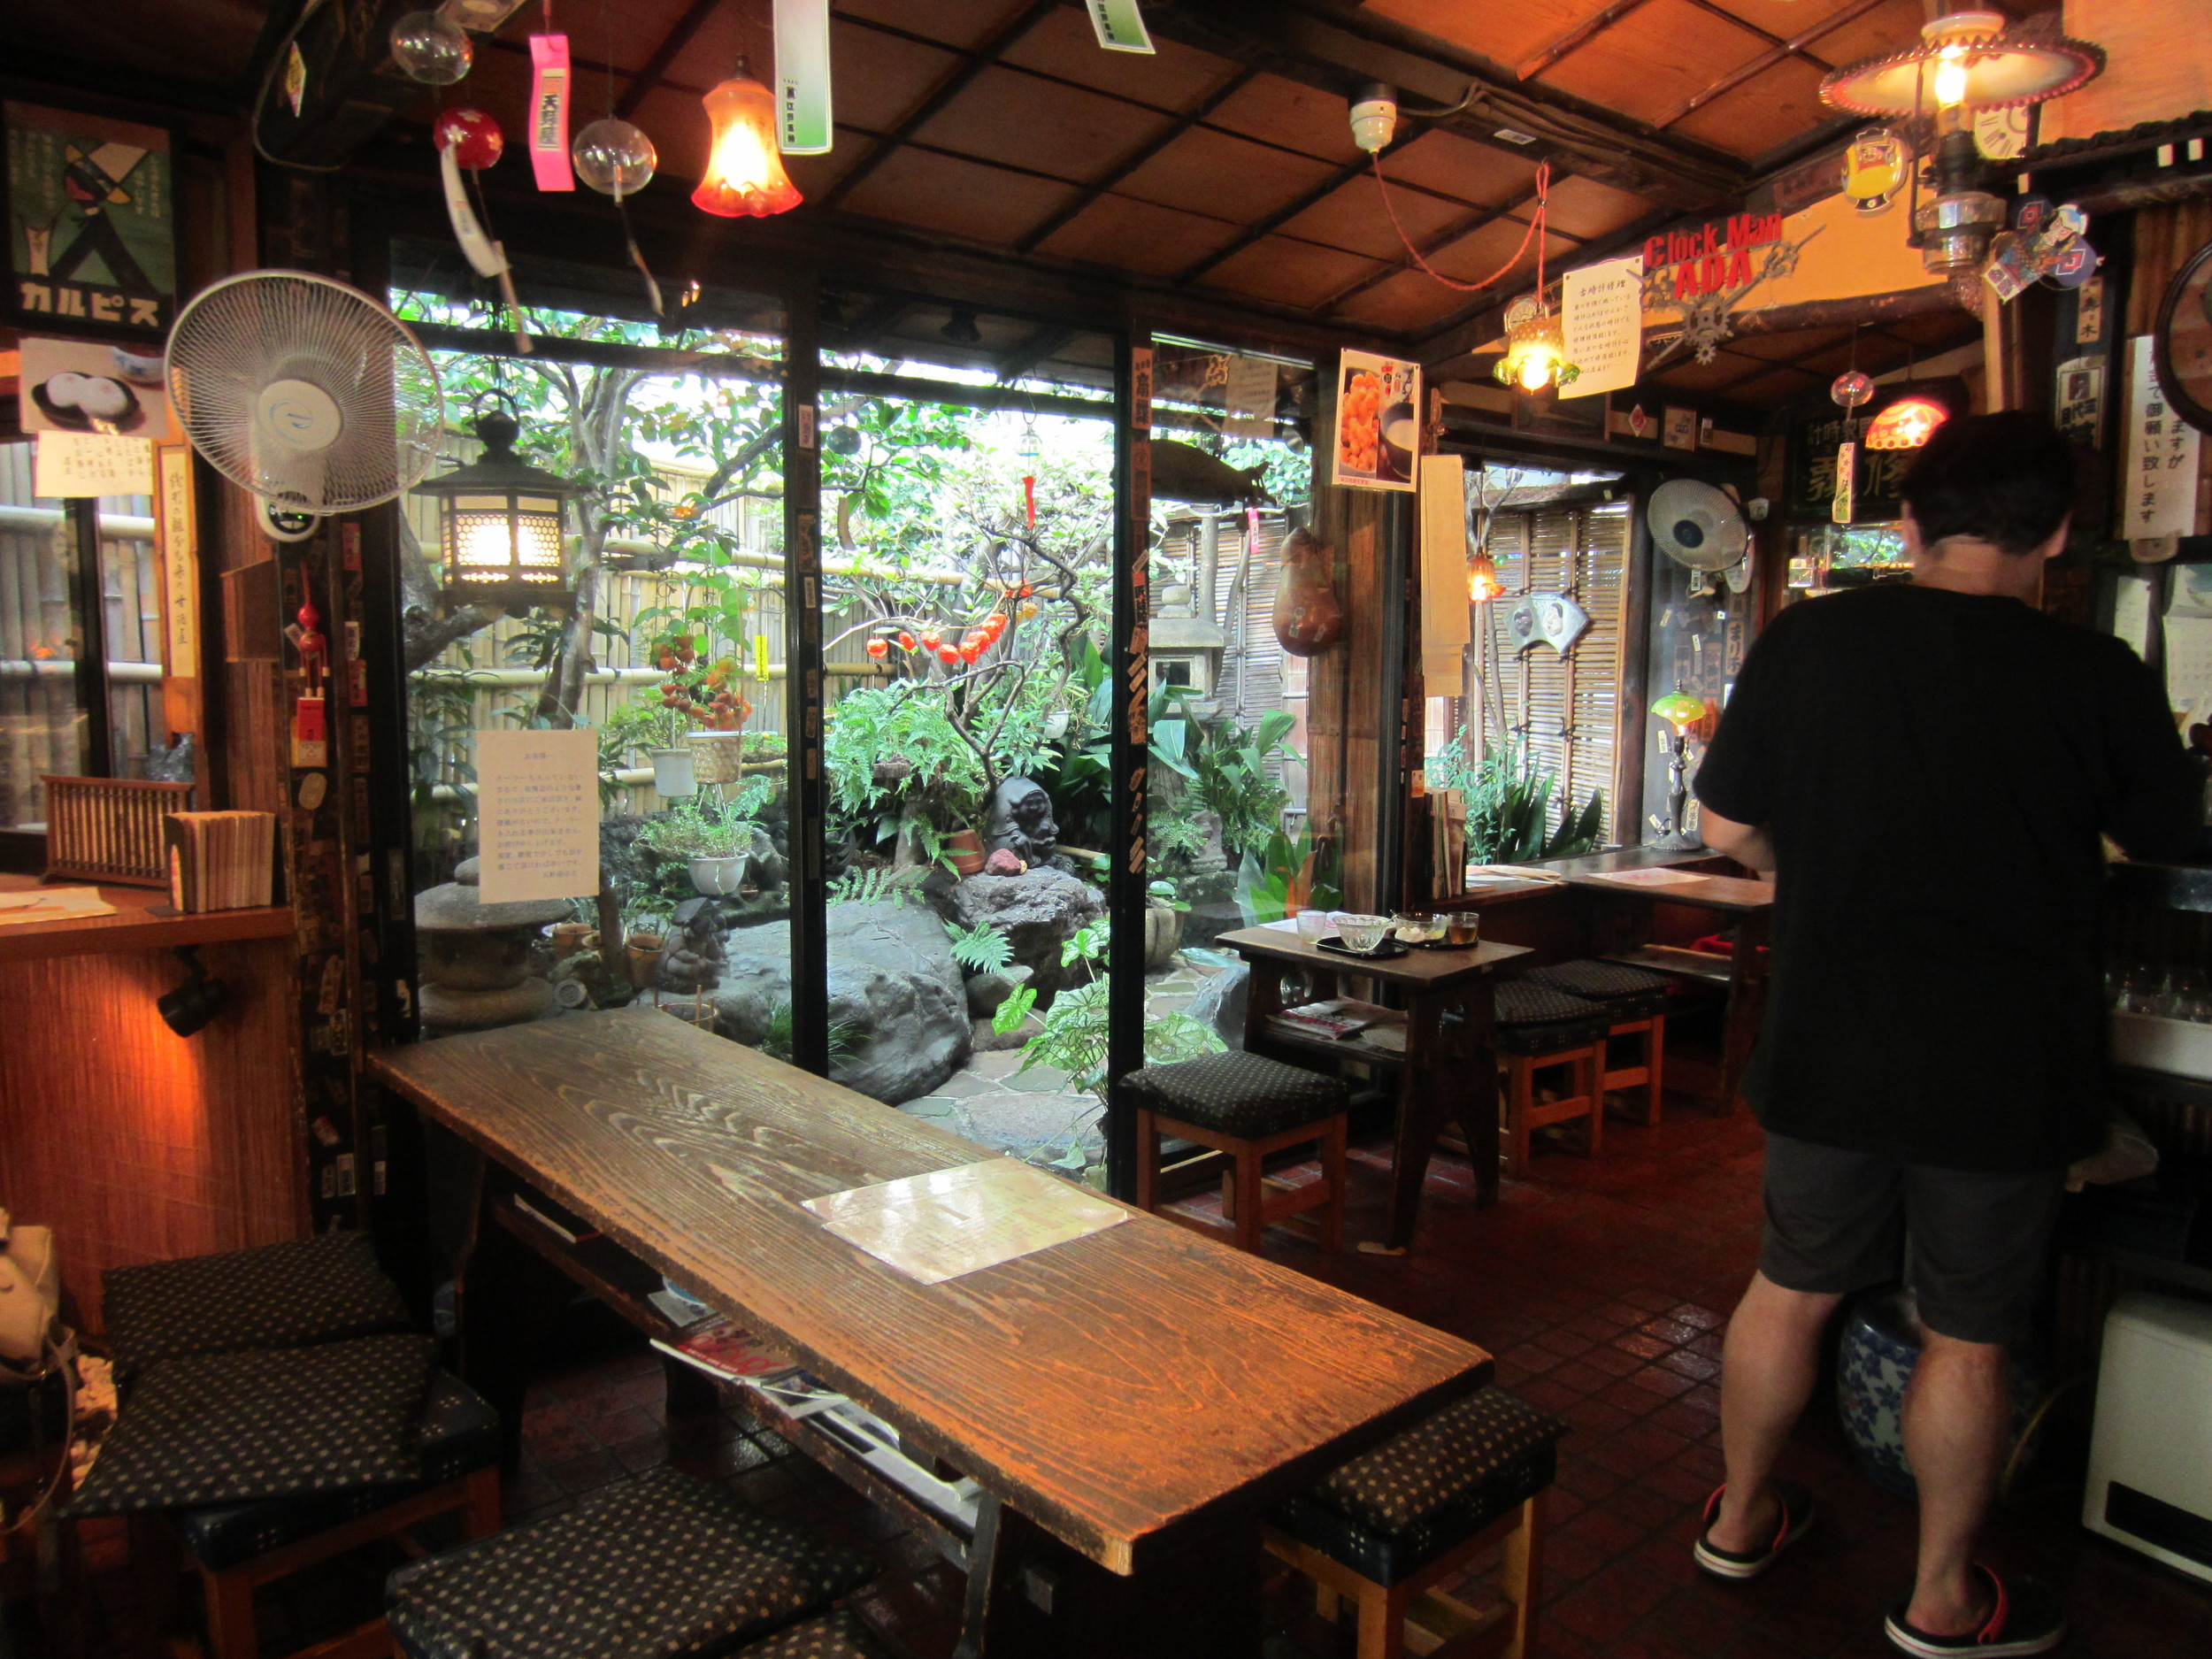 Amanoya includes a beautiful little cafe where we sampled some fantastic amazake, a traditional fermented rice drink.